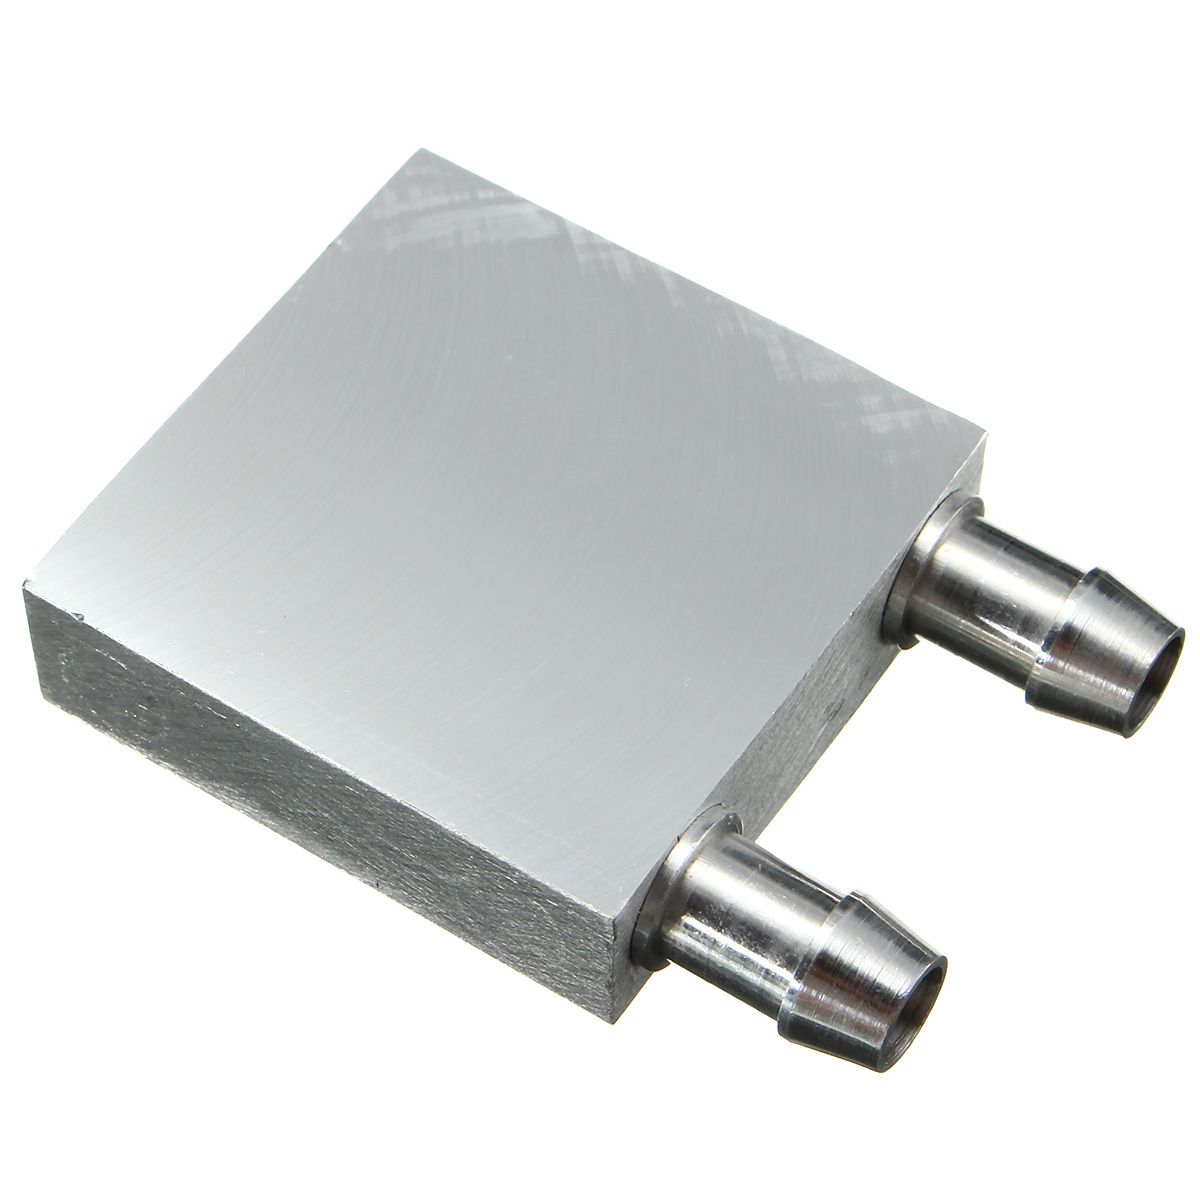 Primary Aluminum Water Cooling Block 40 40mm For Liquid Water